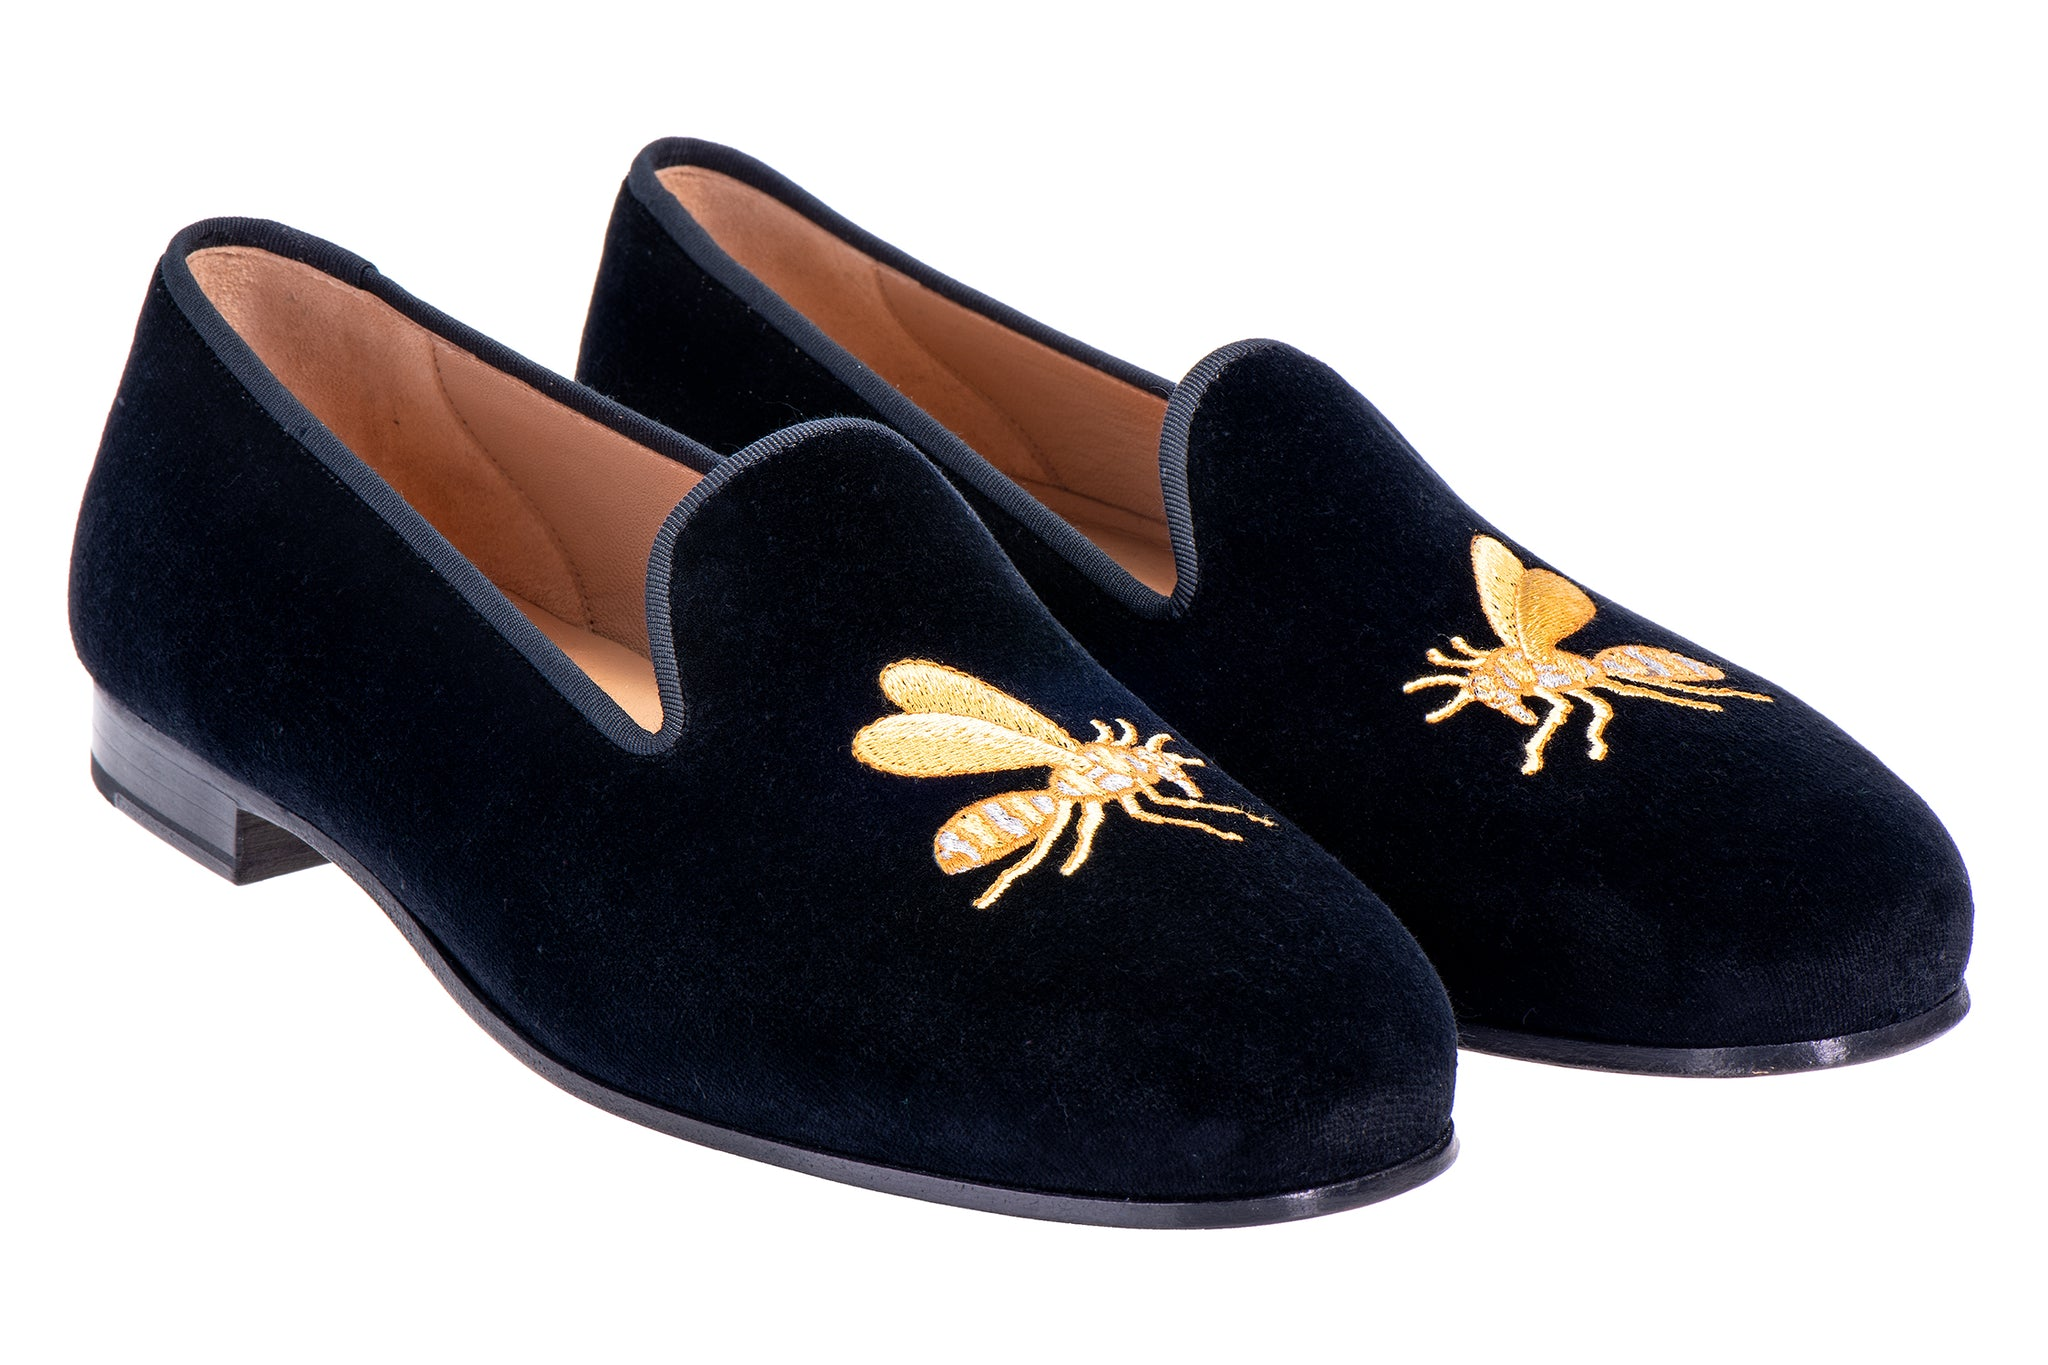 Vespula Black Women Slipper